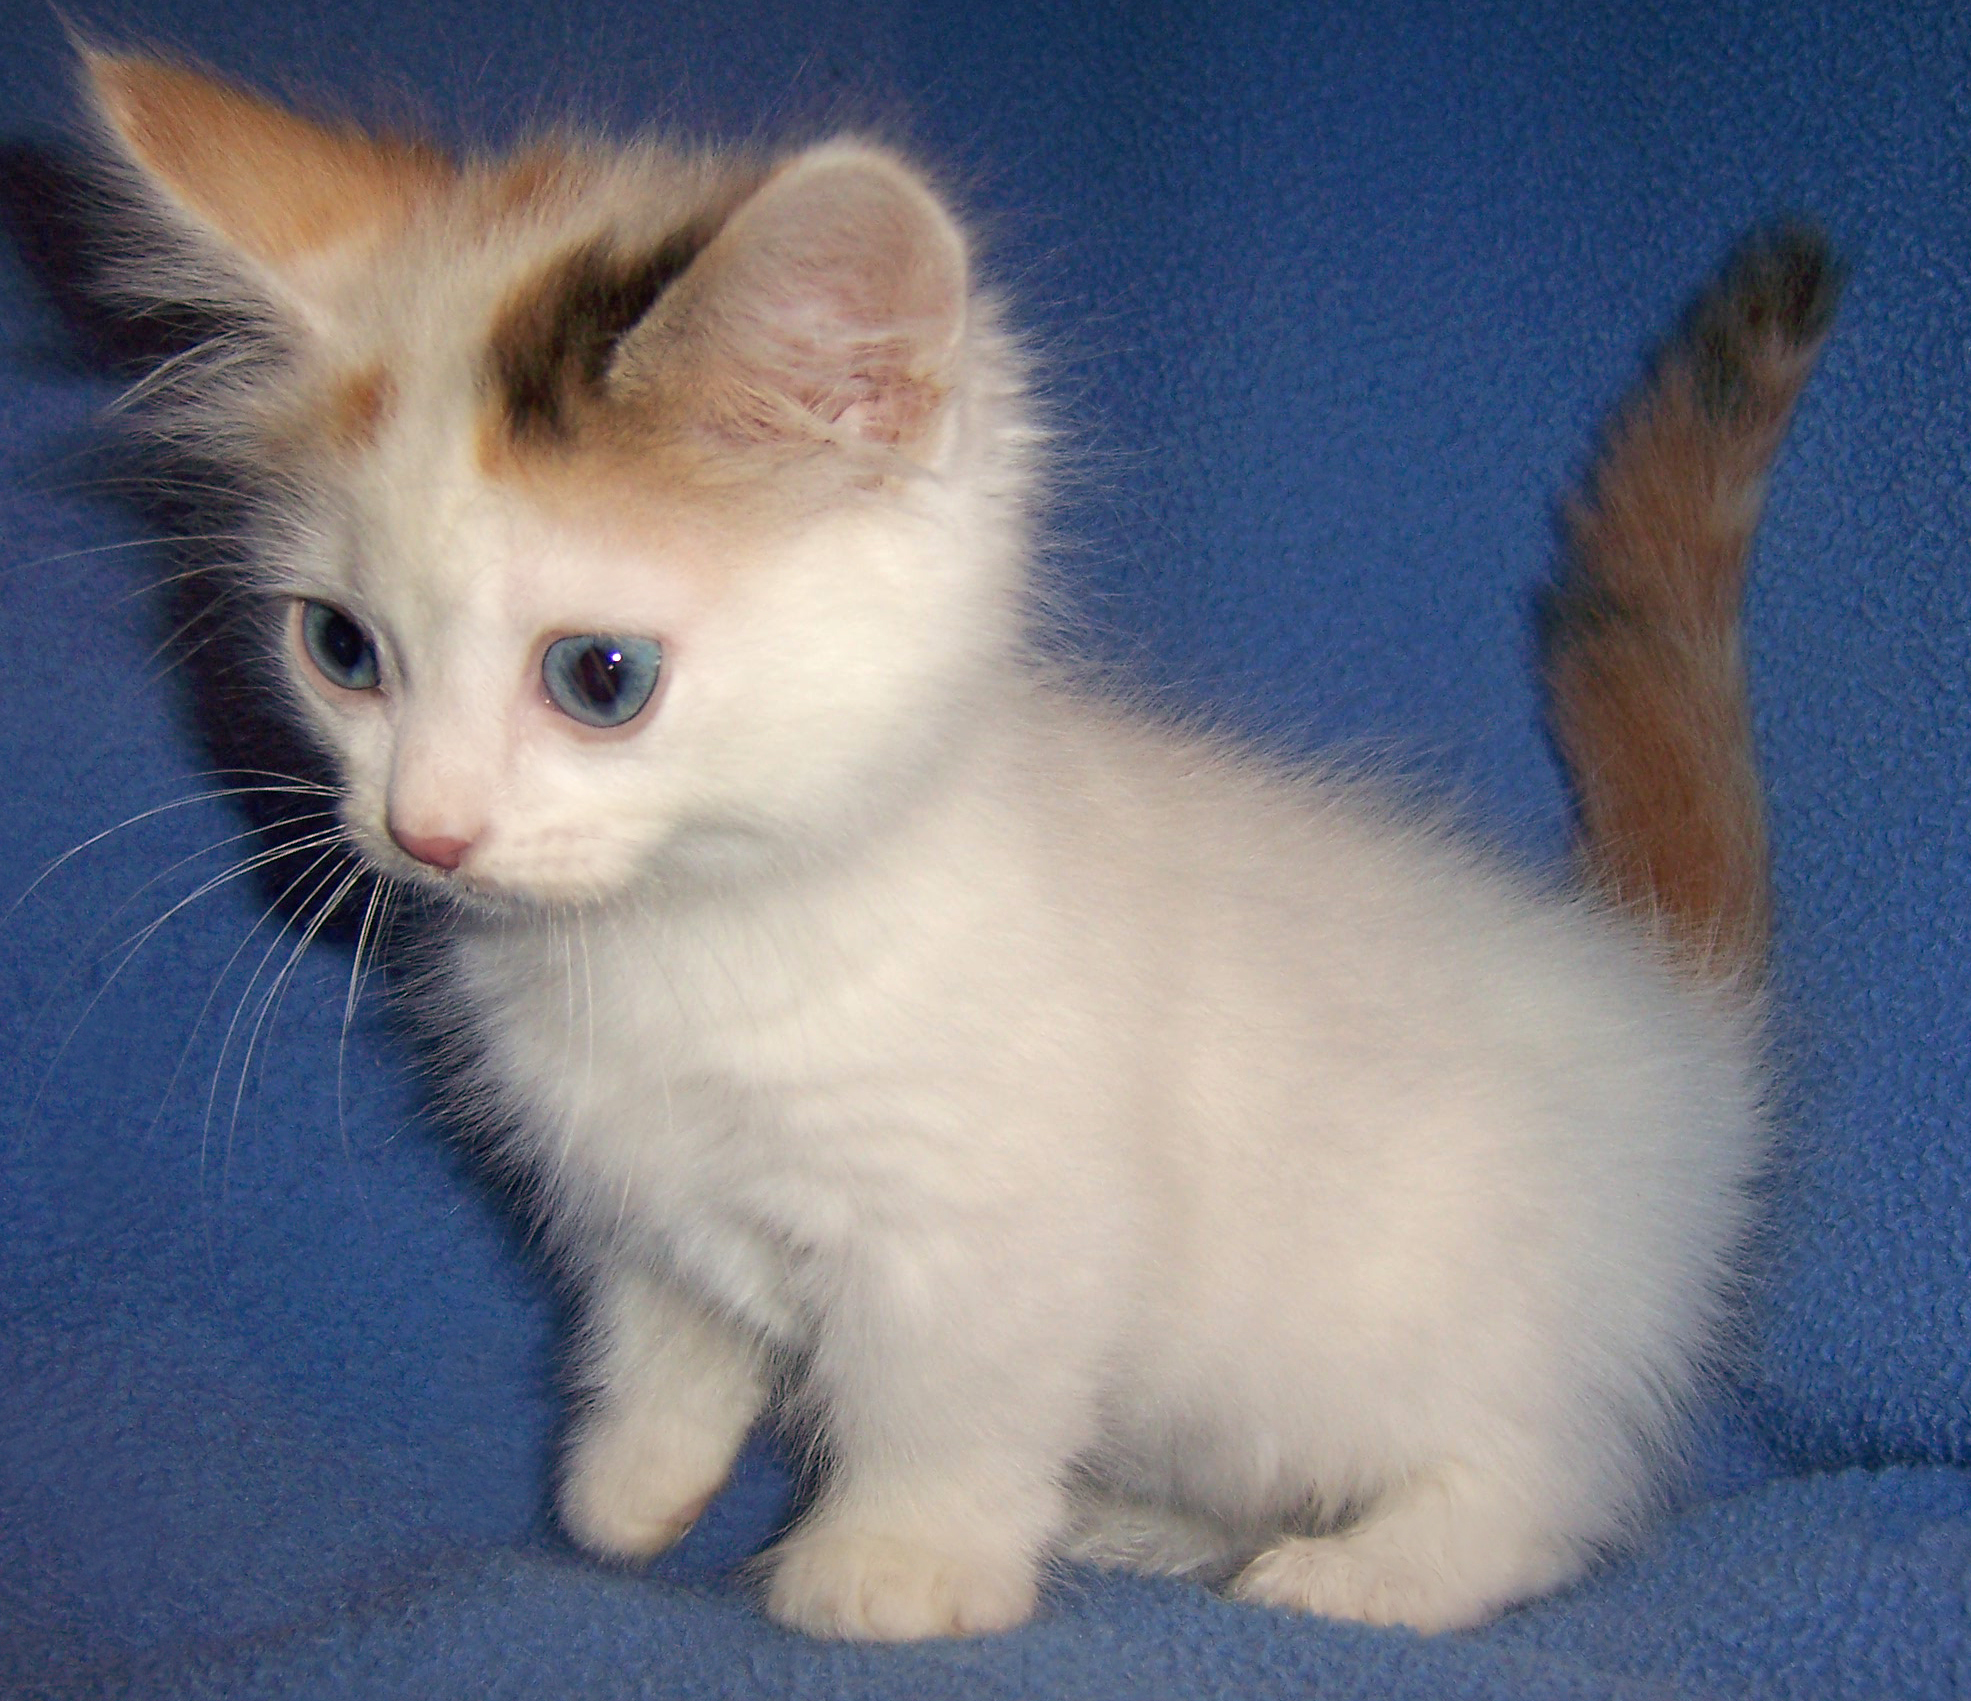 Munchkin Kitten: Munchkin Munchkin Cat History Characteristics And Temperament Breed